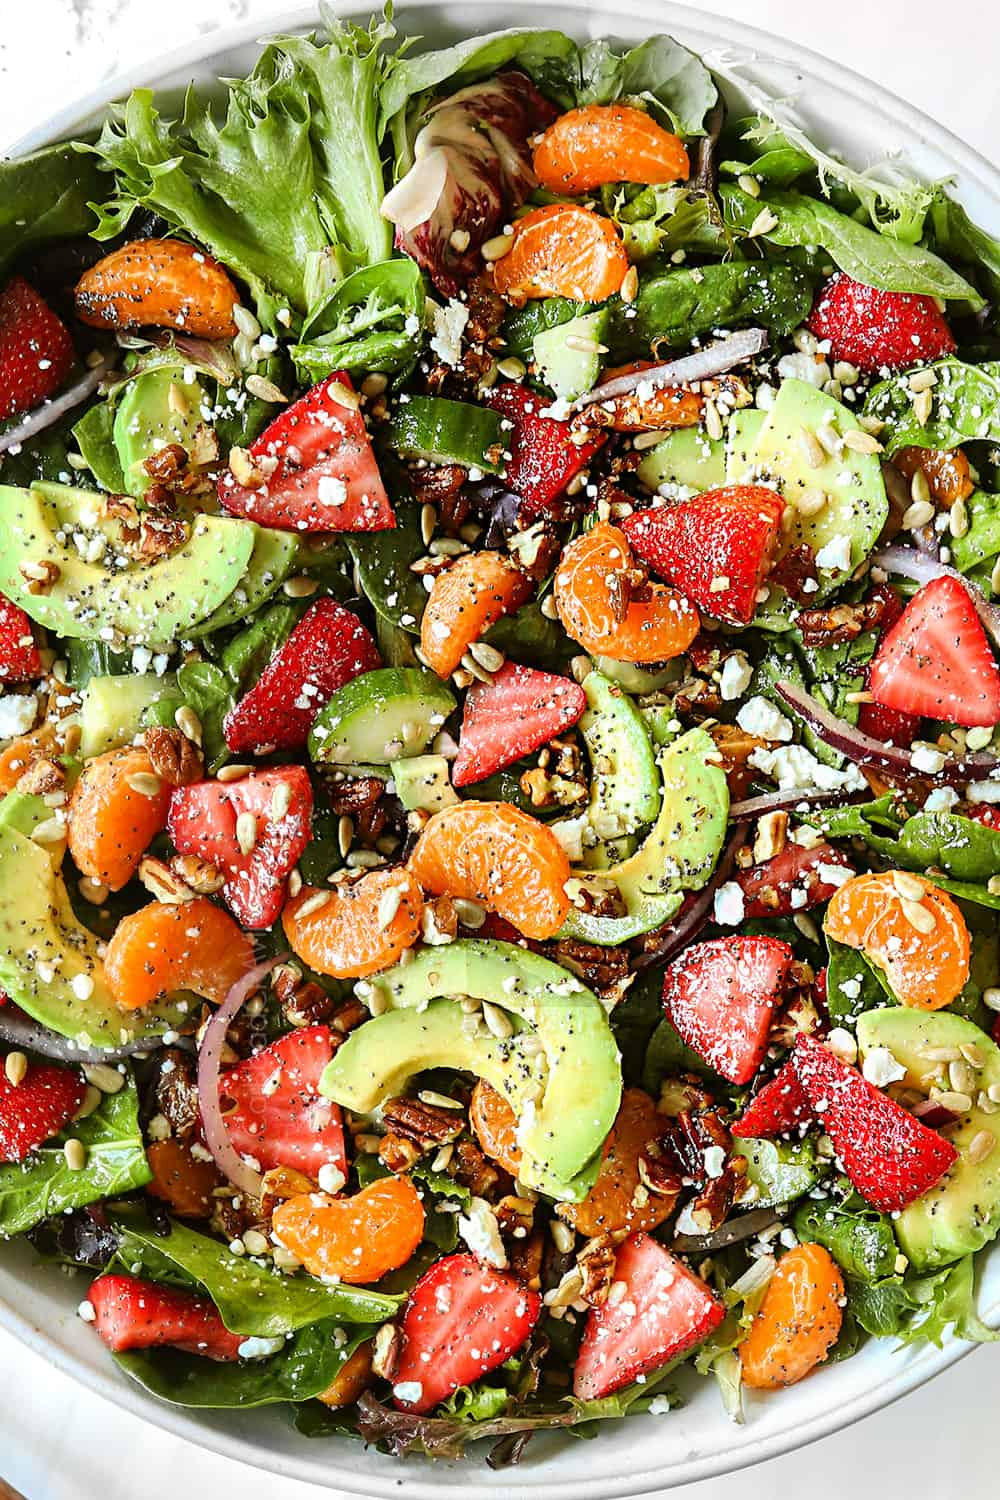 top view of spinach and strawberry salad recipe tossed in a bowl